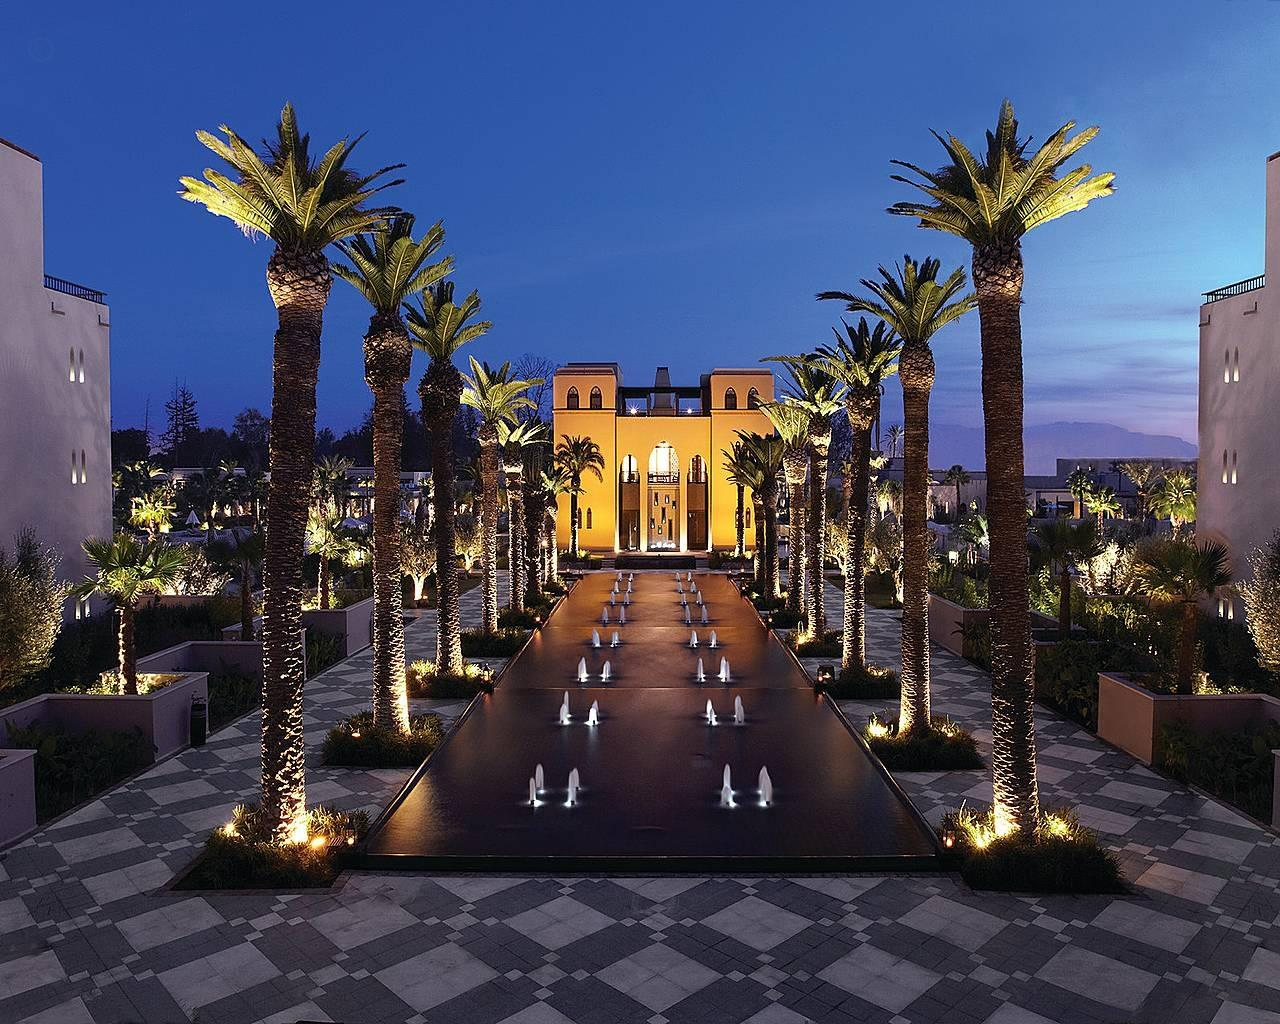 marrakech-morocco-travel-tourist-attractions-711627215